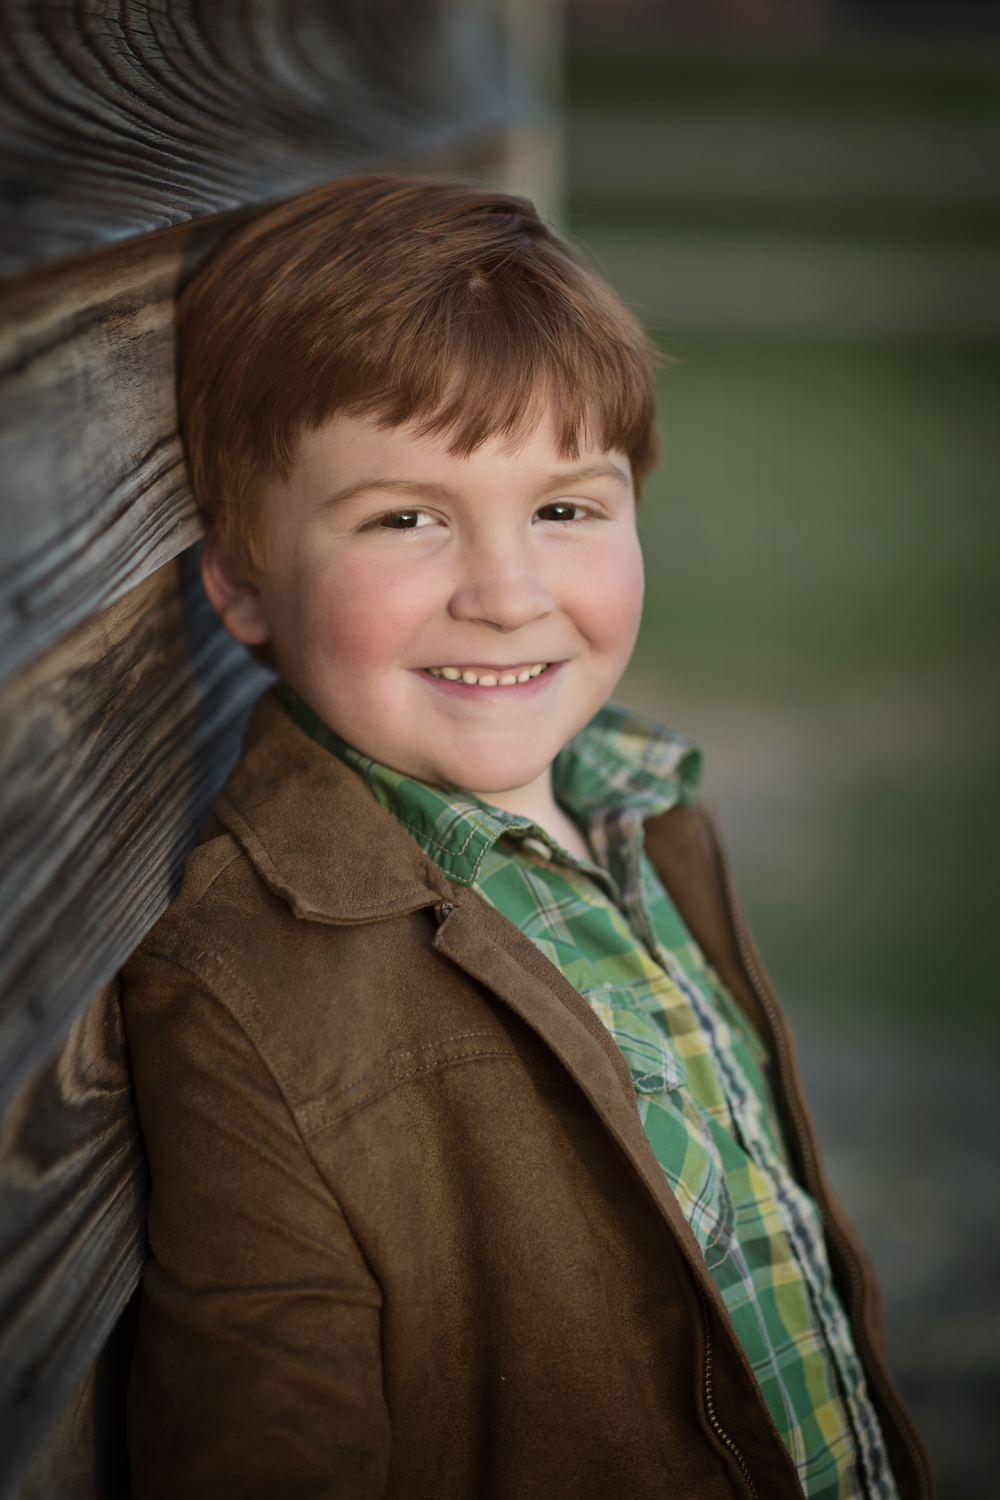 Smiling Redhead boy with freckles with barn Kate Montaner Photography